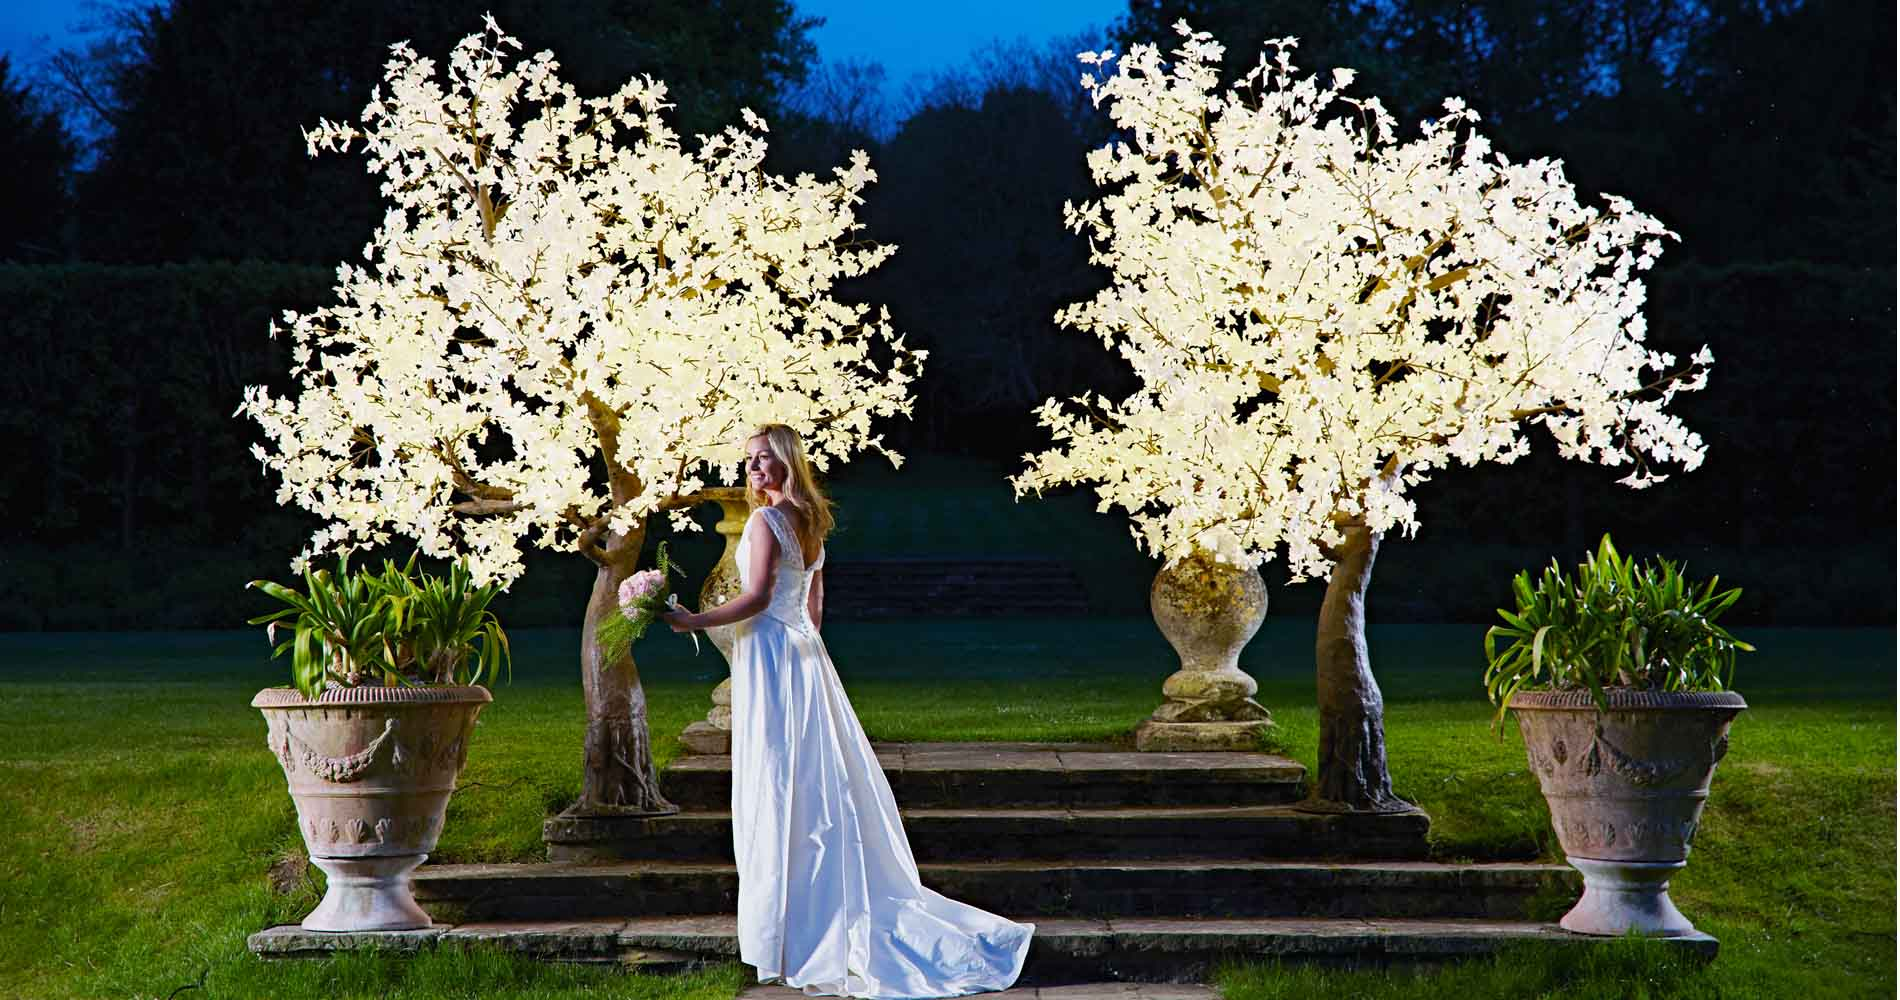 Twilight Trees Garden Bride